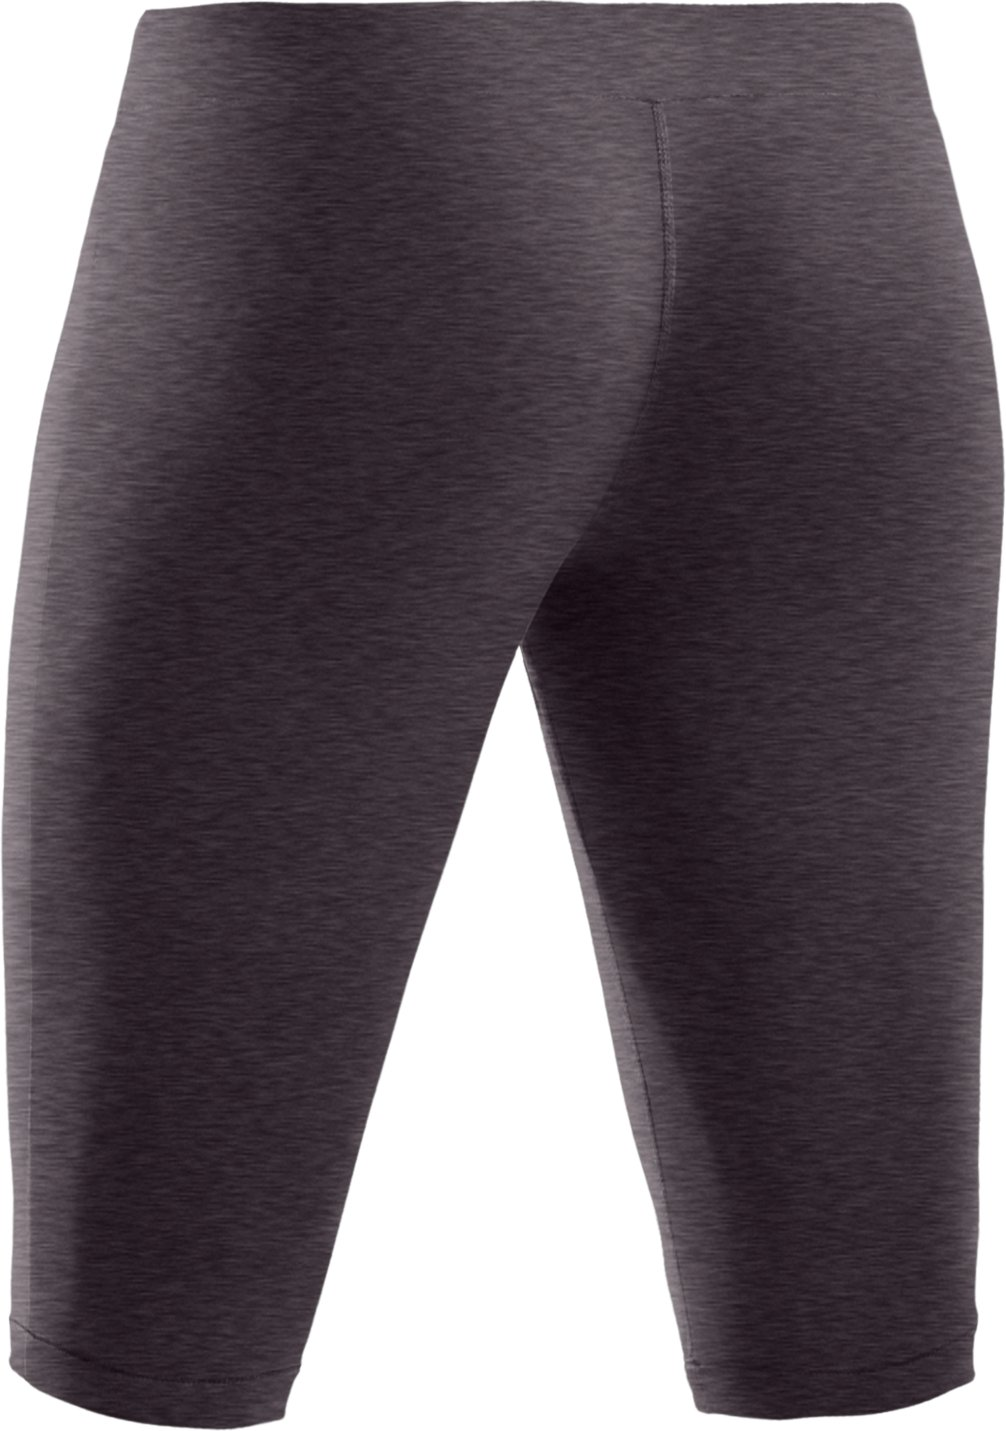 "Women's HeatGear® Touch 12"" Shorts, Carbon Heather"